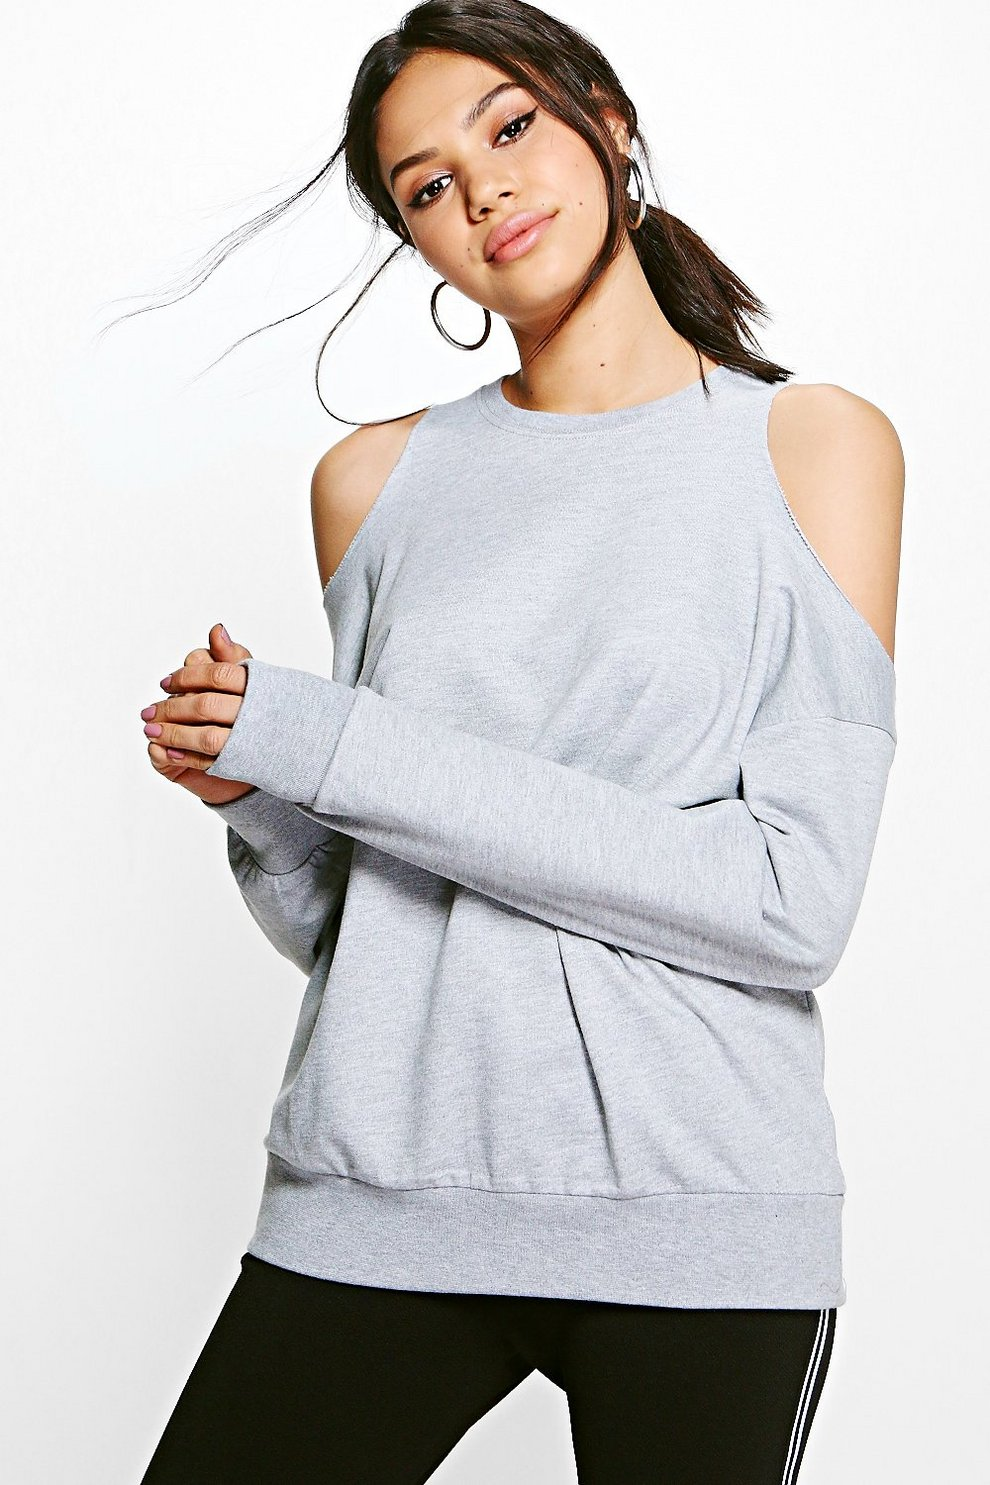 dd7cba612e5 Esme Extreme Cold Shoulder Sweat Shirt. Womens Grey marl Esme Extreme Cold  Shoulder Sweat Shirt. Hover to zoom